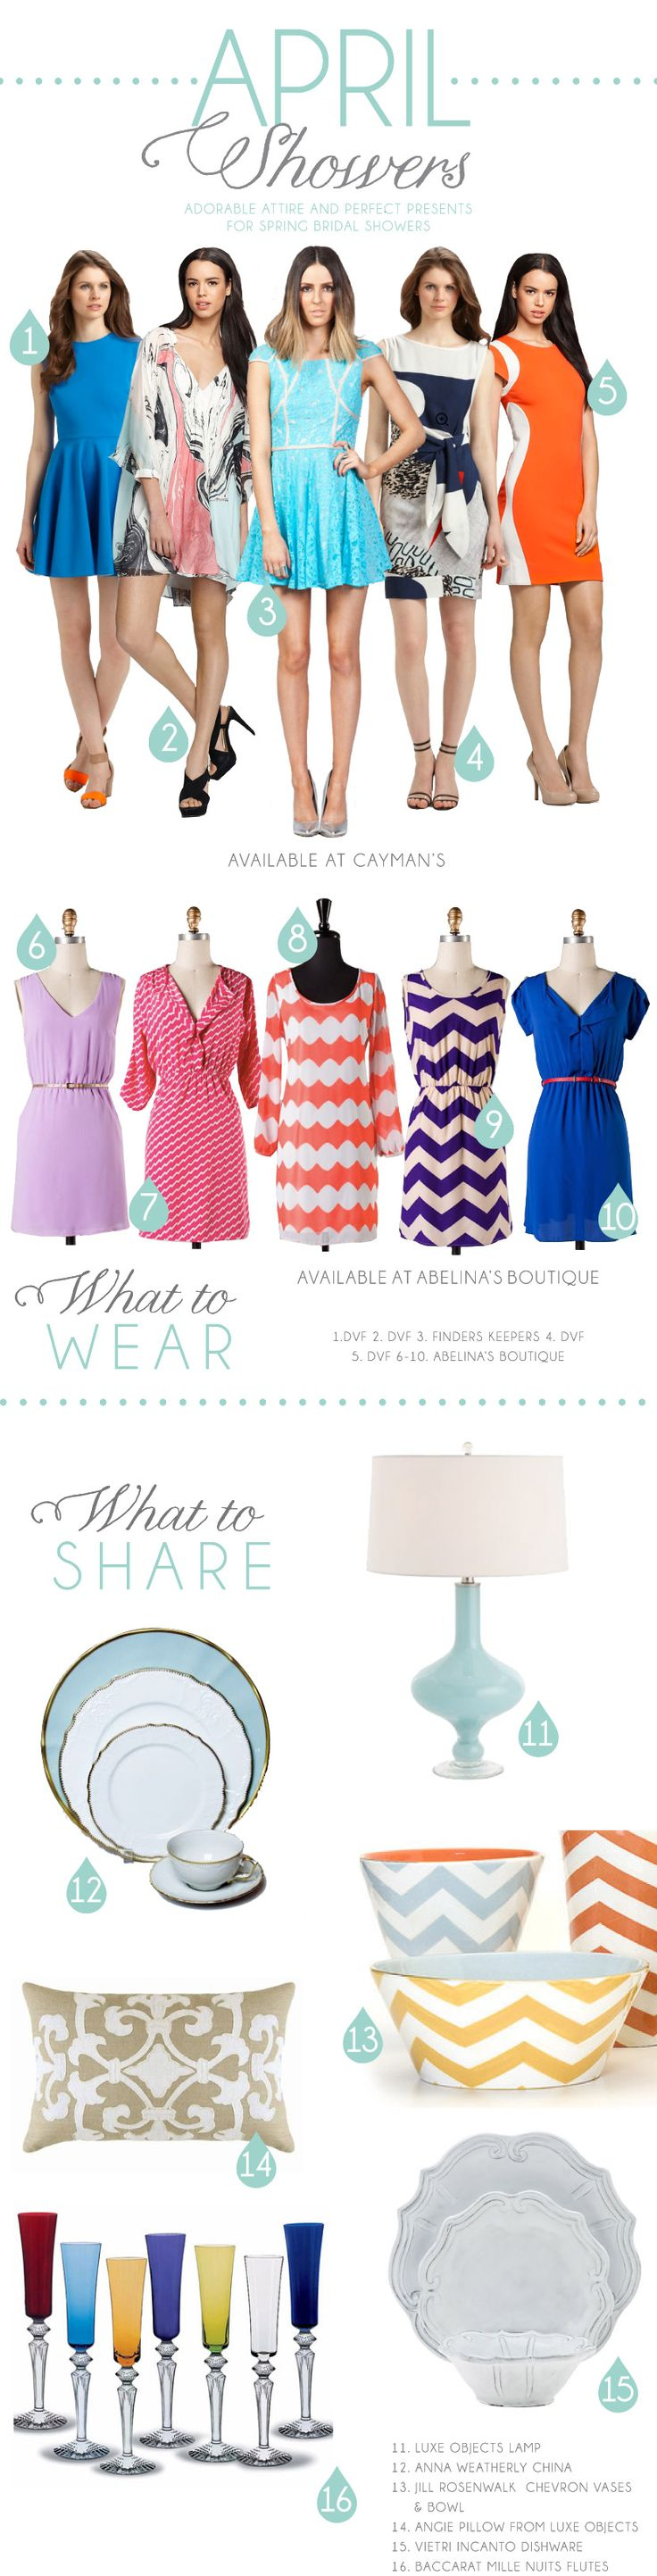 April Showers | Adorable attire and perfect presents for spring bridal showers. #wedding #bridalshower #gift #dress #dinnerware